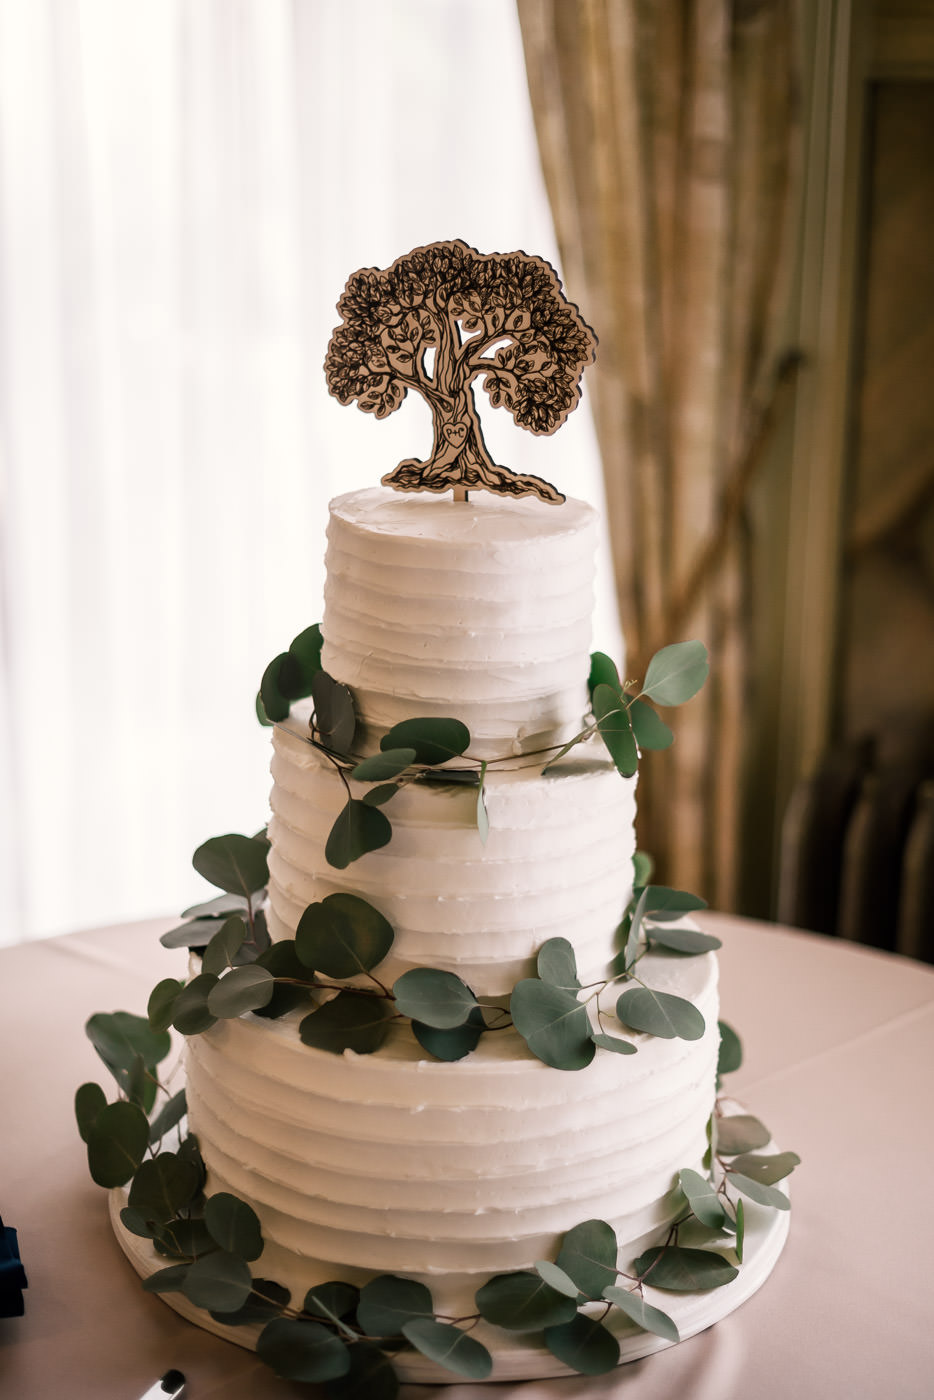 Beautiful tierd wedding cake with eucalyptus details and an oak tree topper.